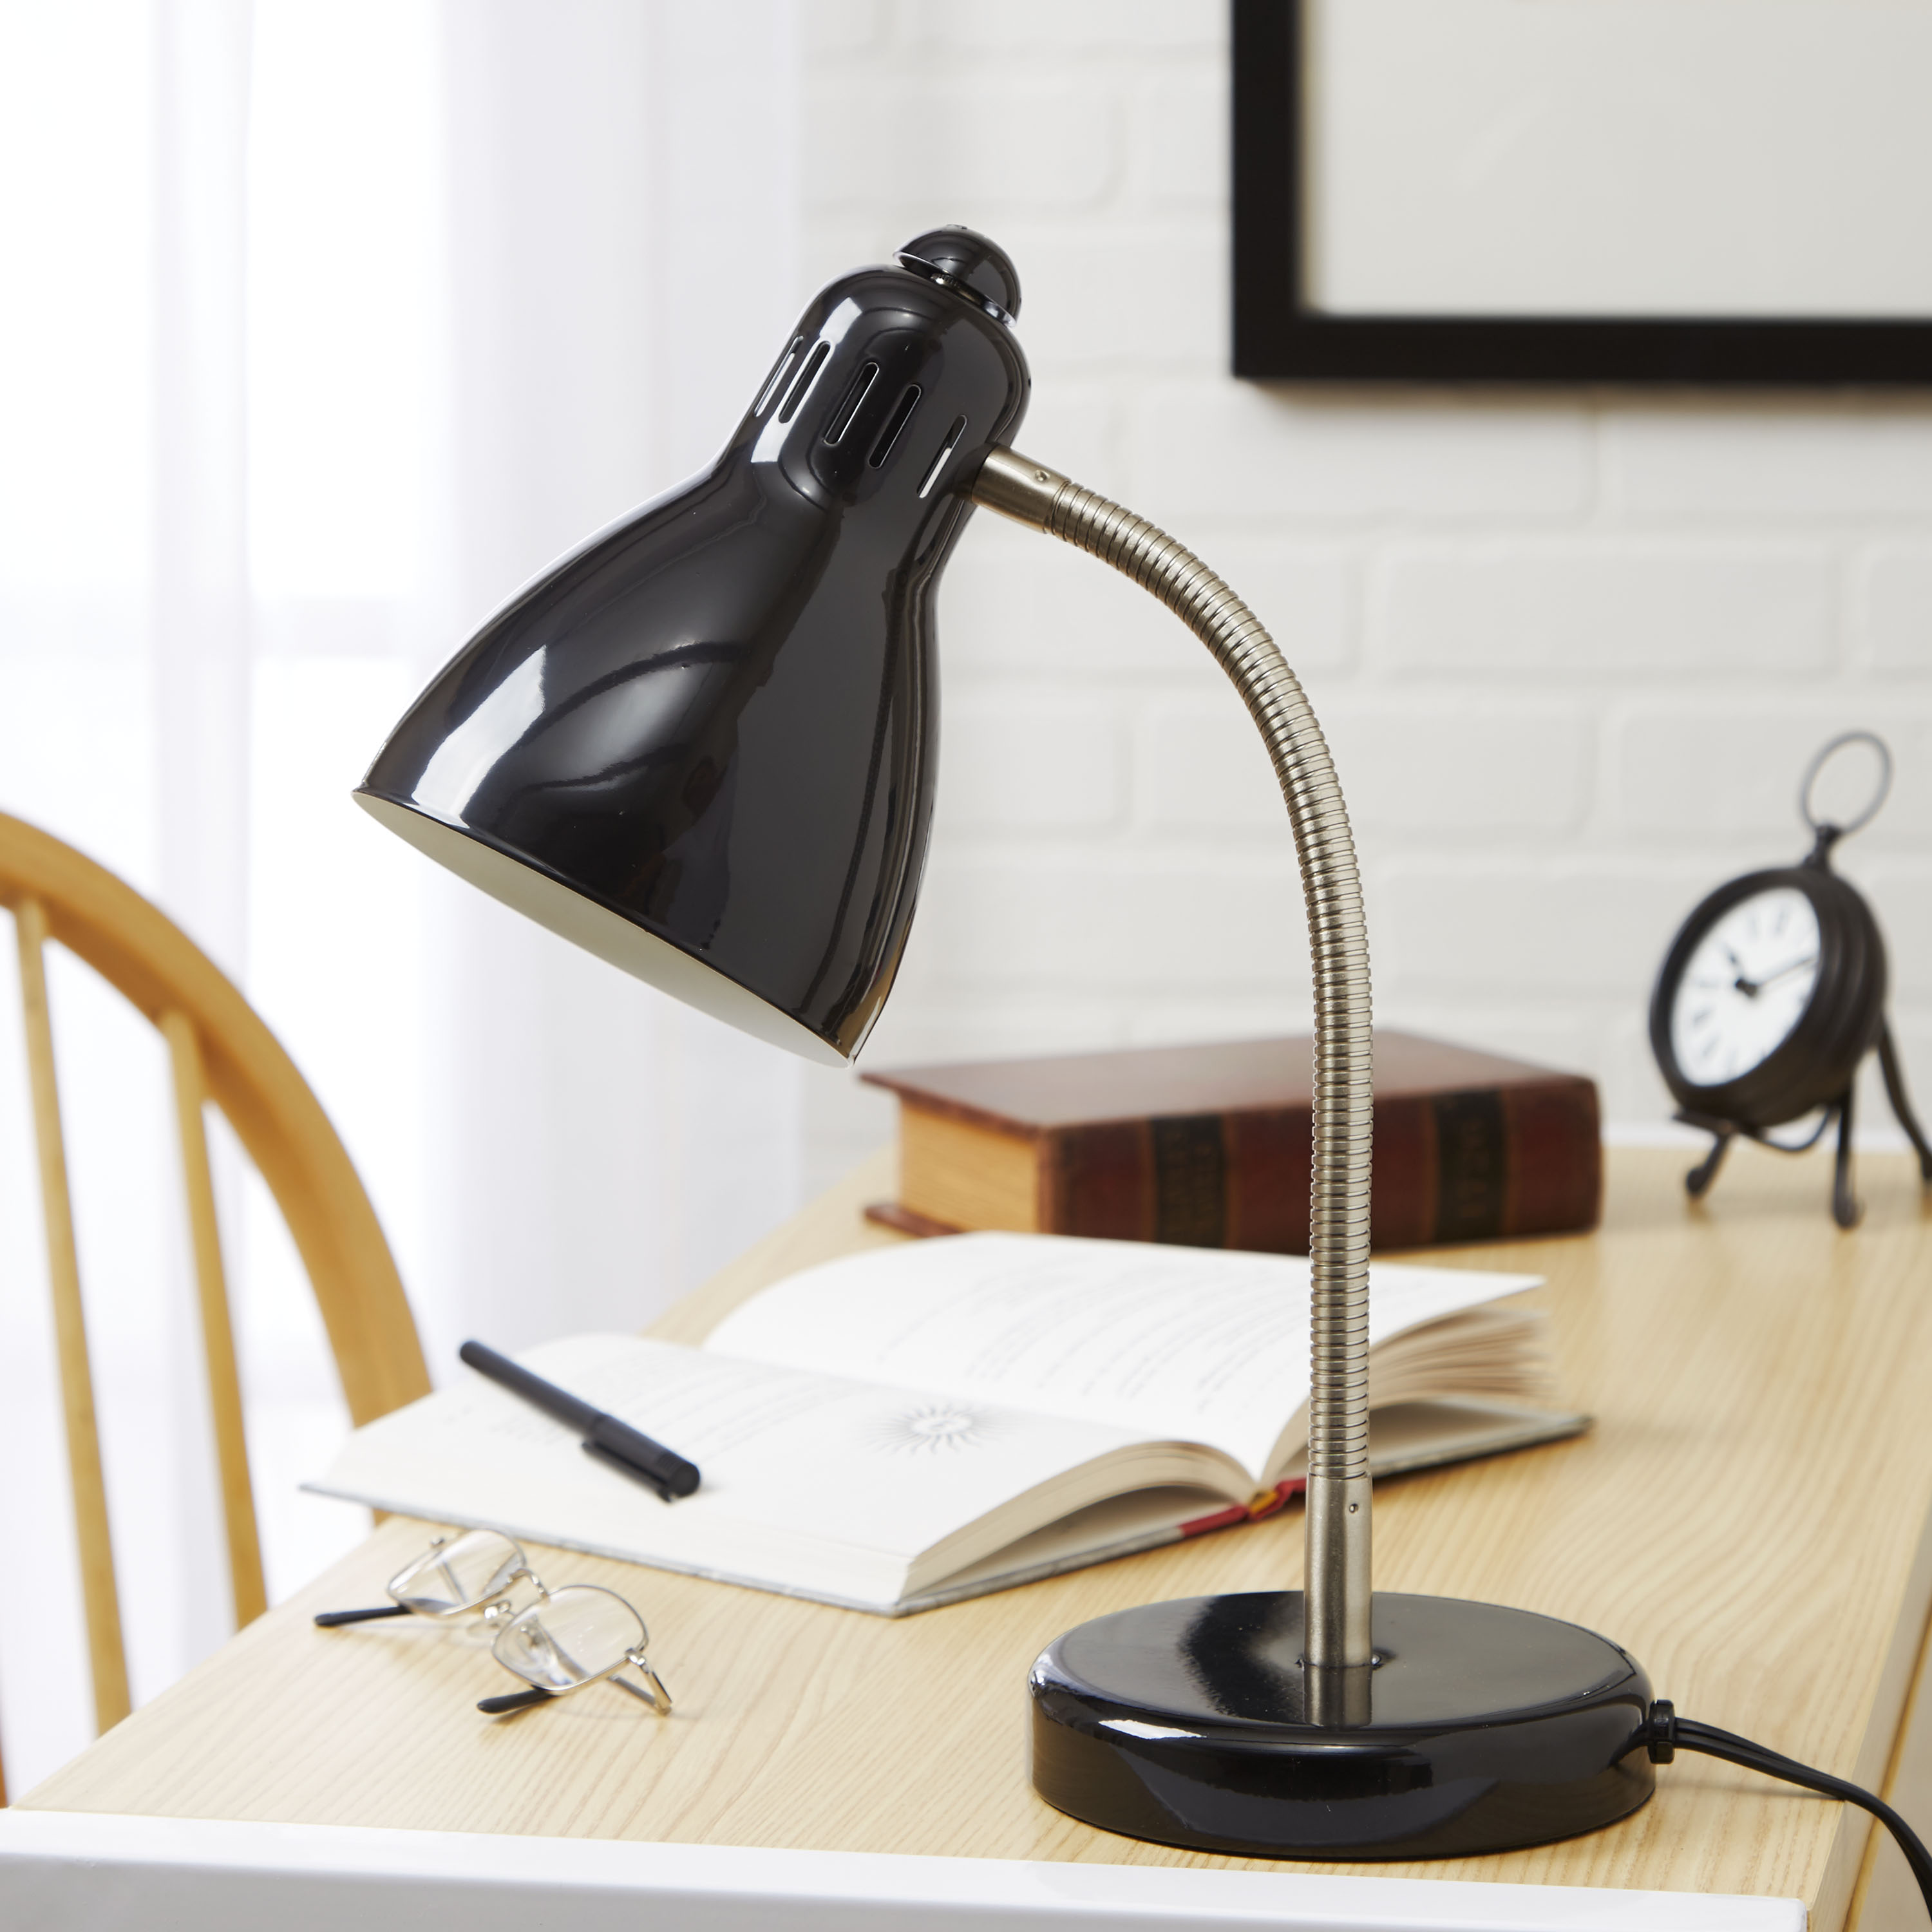 Mainstays Gooseneck Desk Lamp with Brushed Nickel Accents